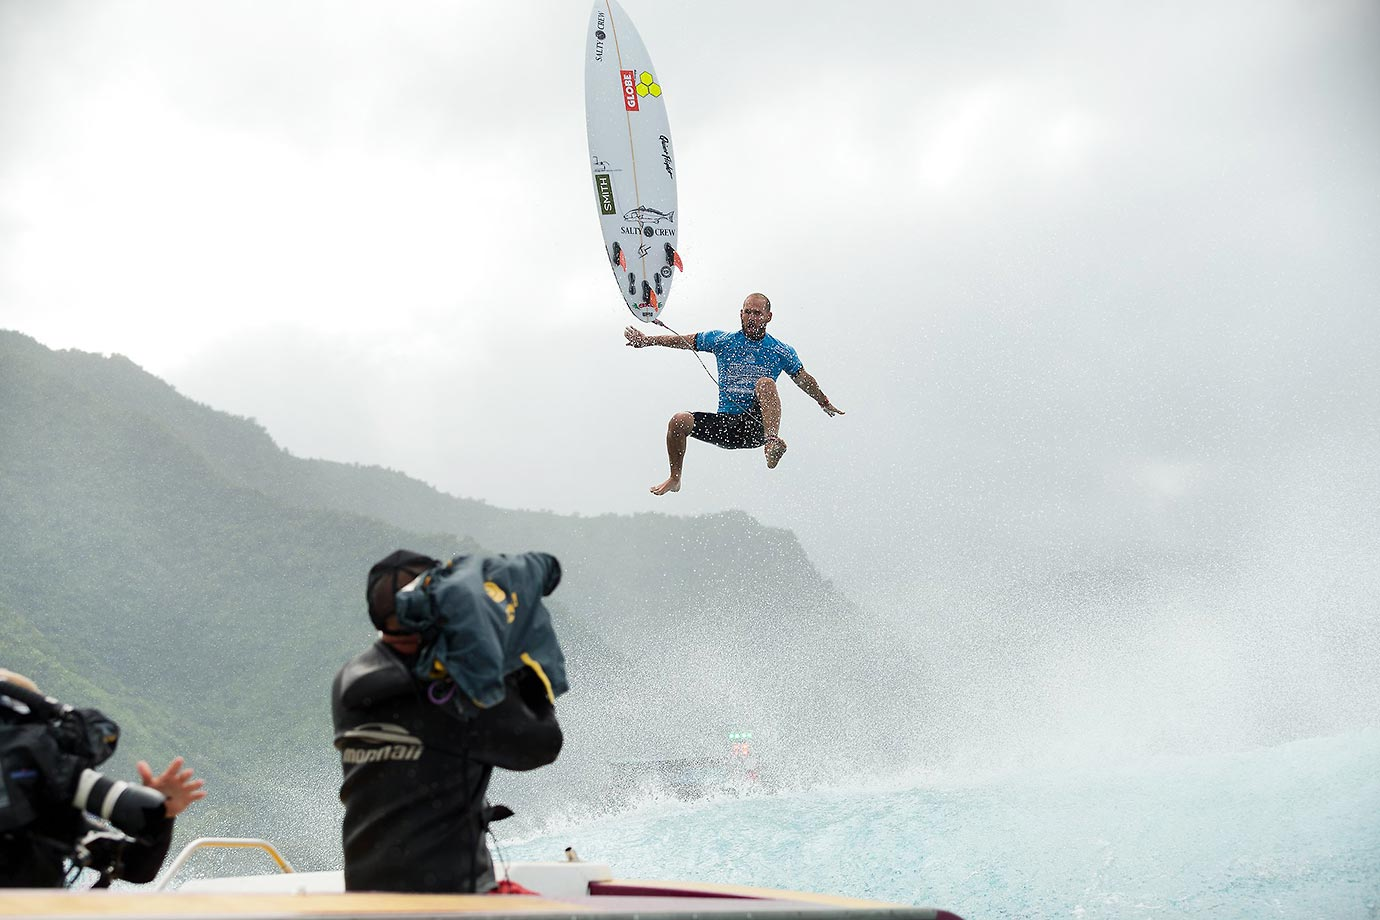 CJ Hobgood of the U.S. finished third and was awarded the Andy Irons Most Committed Performance award at the Billabong Pro Tahiti.